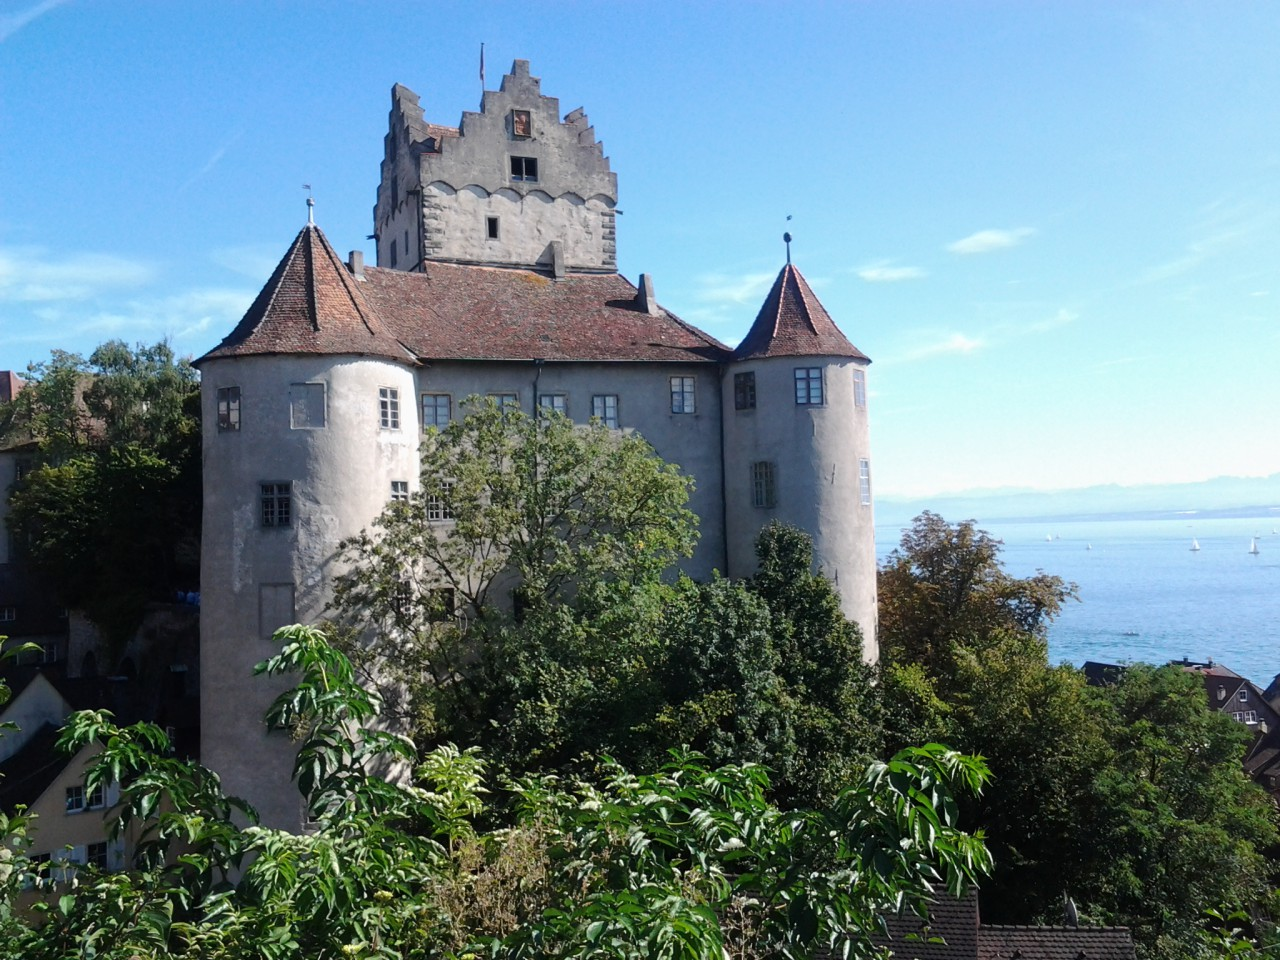 Castle of Meersburg